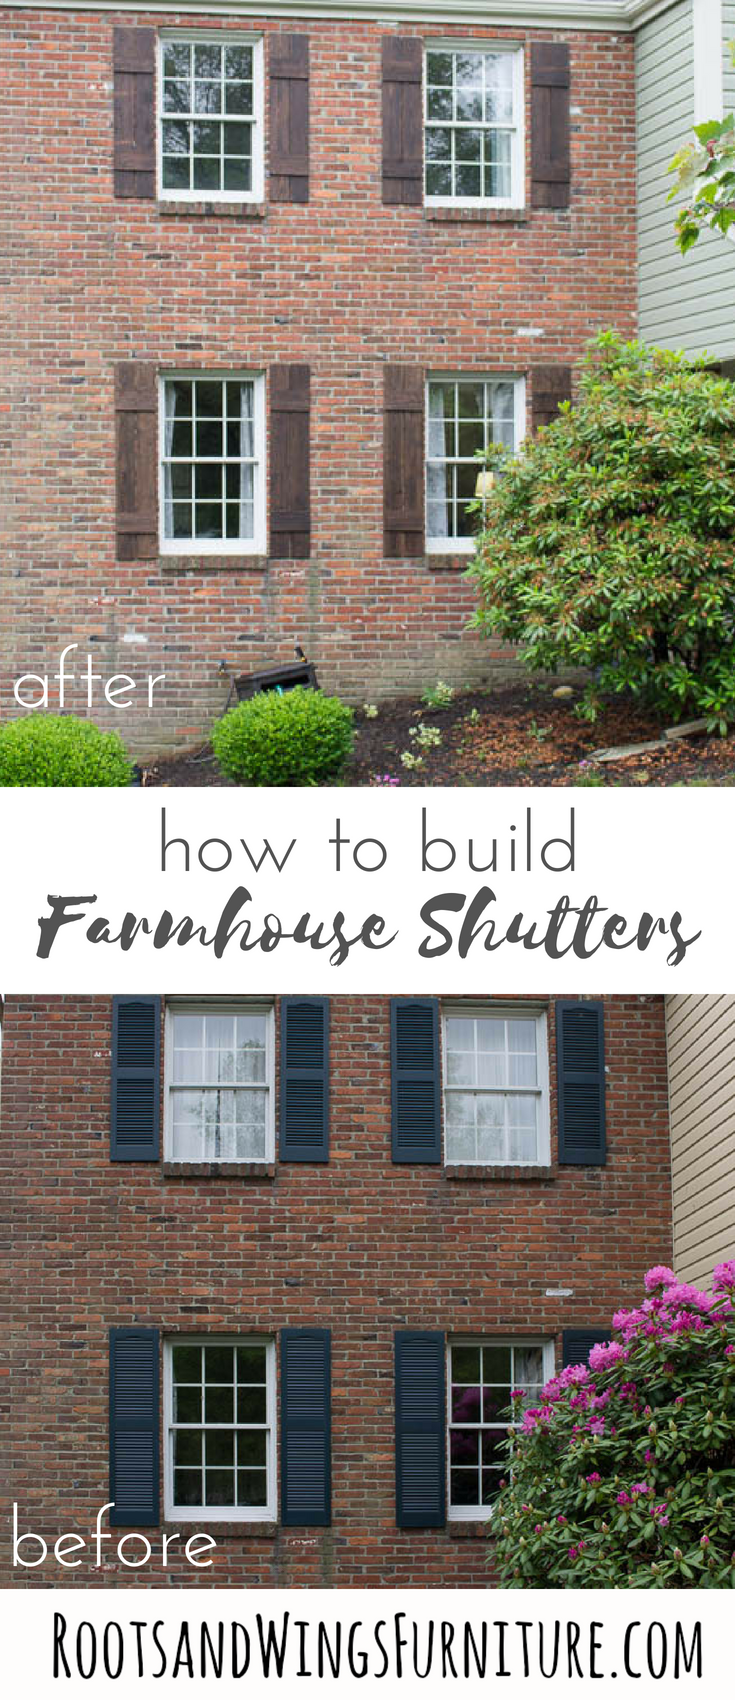 HOW TO BUILD FARMHOUSE SHUTTERS by Roots and Wings Furniture.png